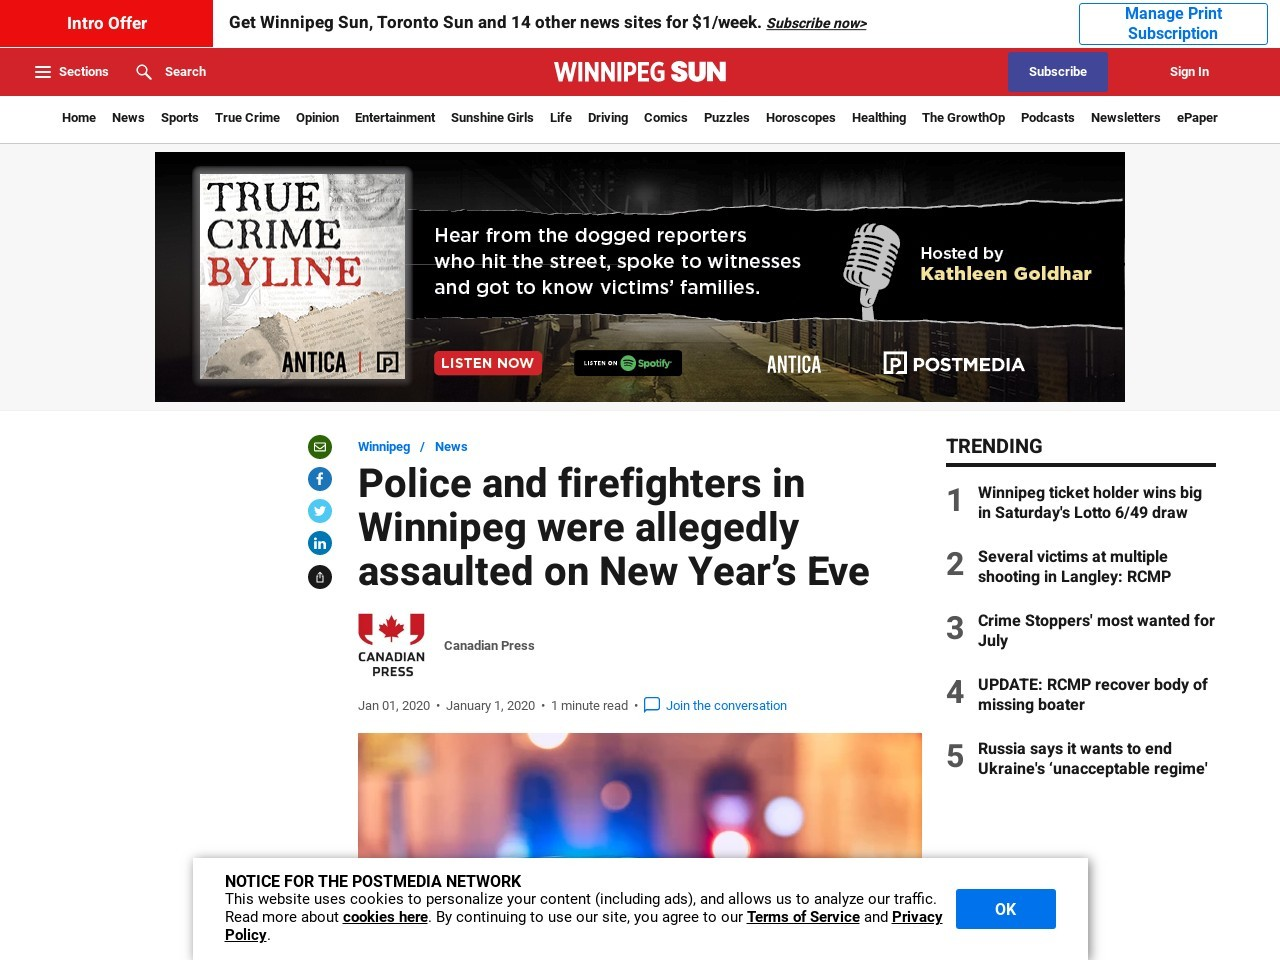 Police and firefighters in Winnipeg were allegedly assaulted on New Year's Eve